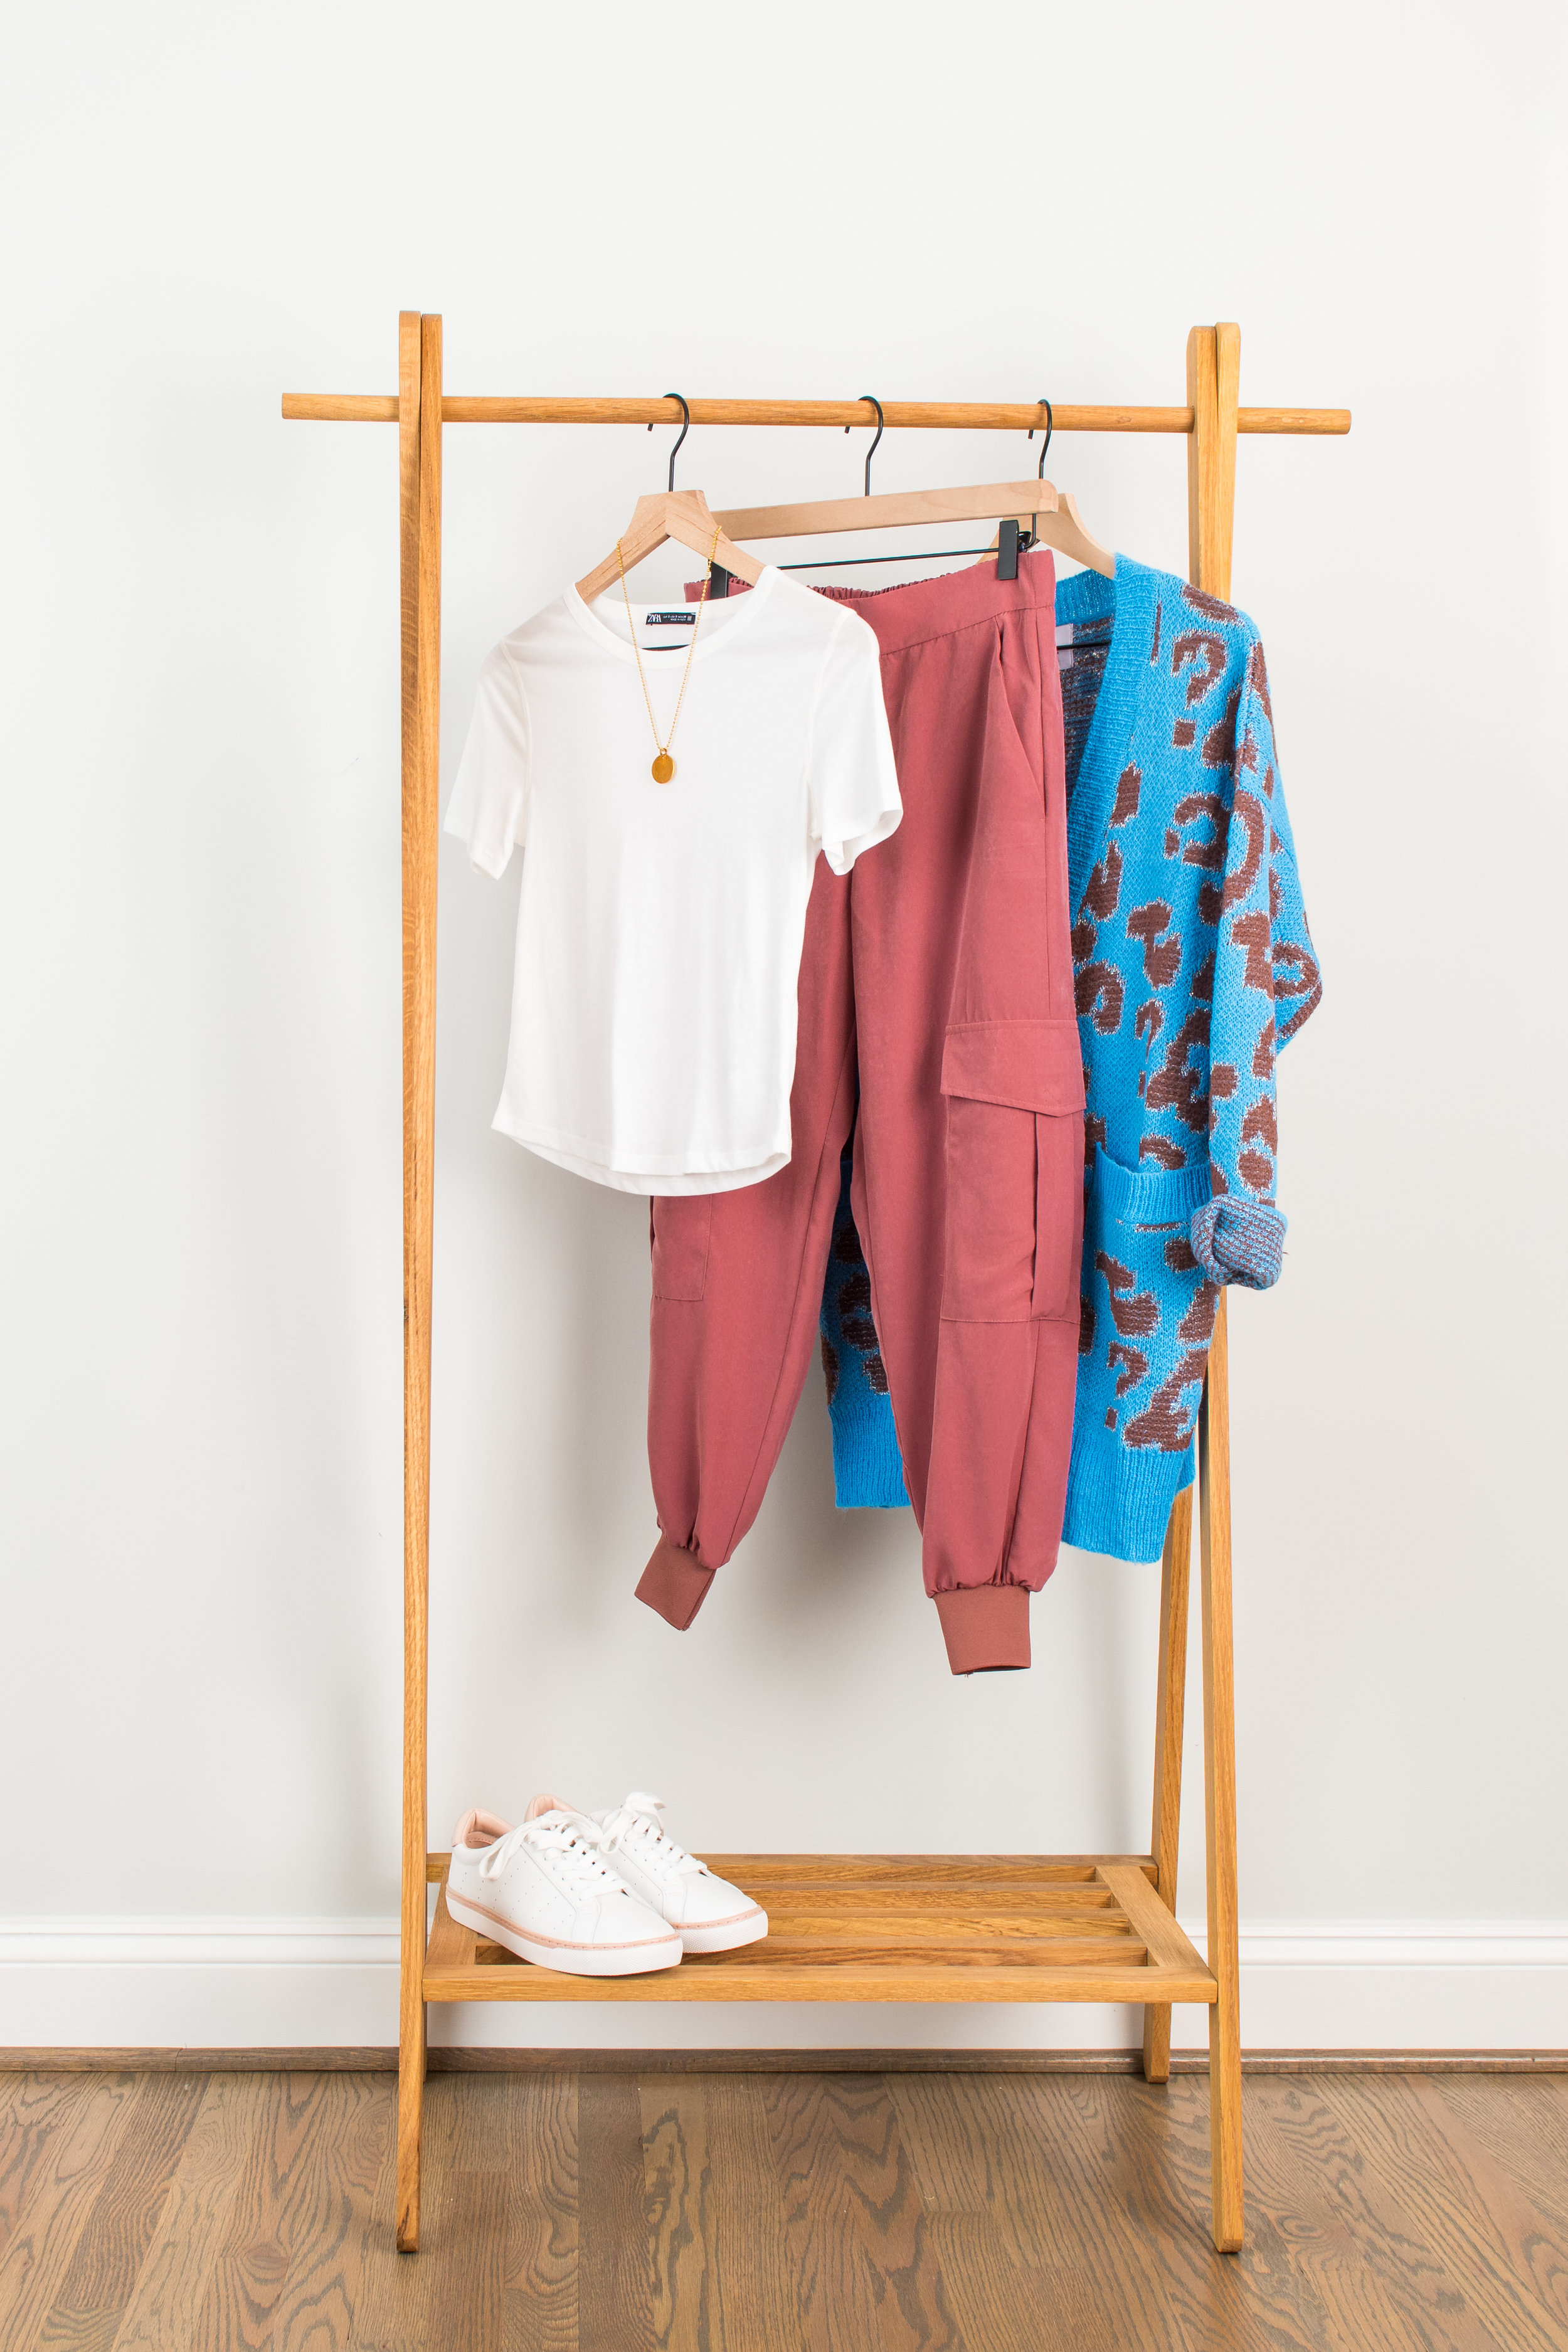 Dressy Athleisure Cool - Wear to: Daytime meeting or movie with friendsT-Shirt: 1 // 2 // 3Dressy Jogger: 1 // 2 // 3Cardigan: 1 // 2 // 3Necklace: 1 // 2 // 3Sneaker : 1 // 2 // 3